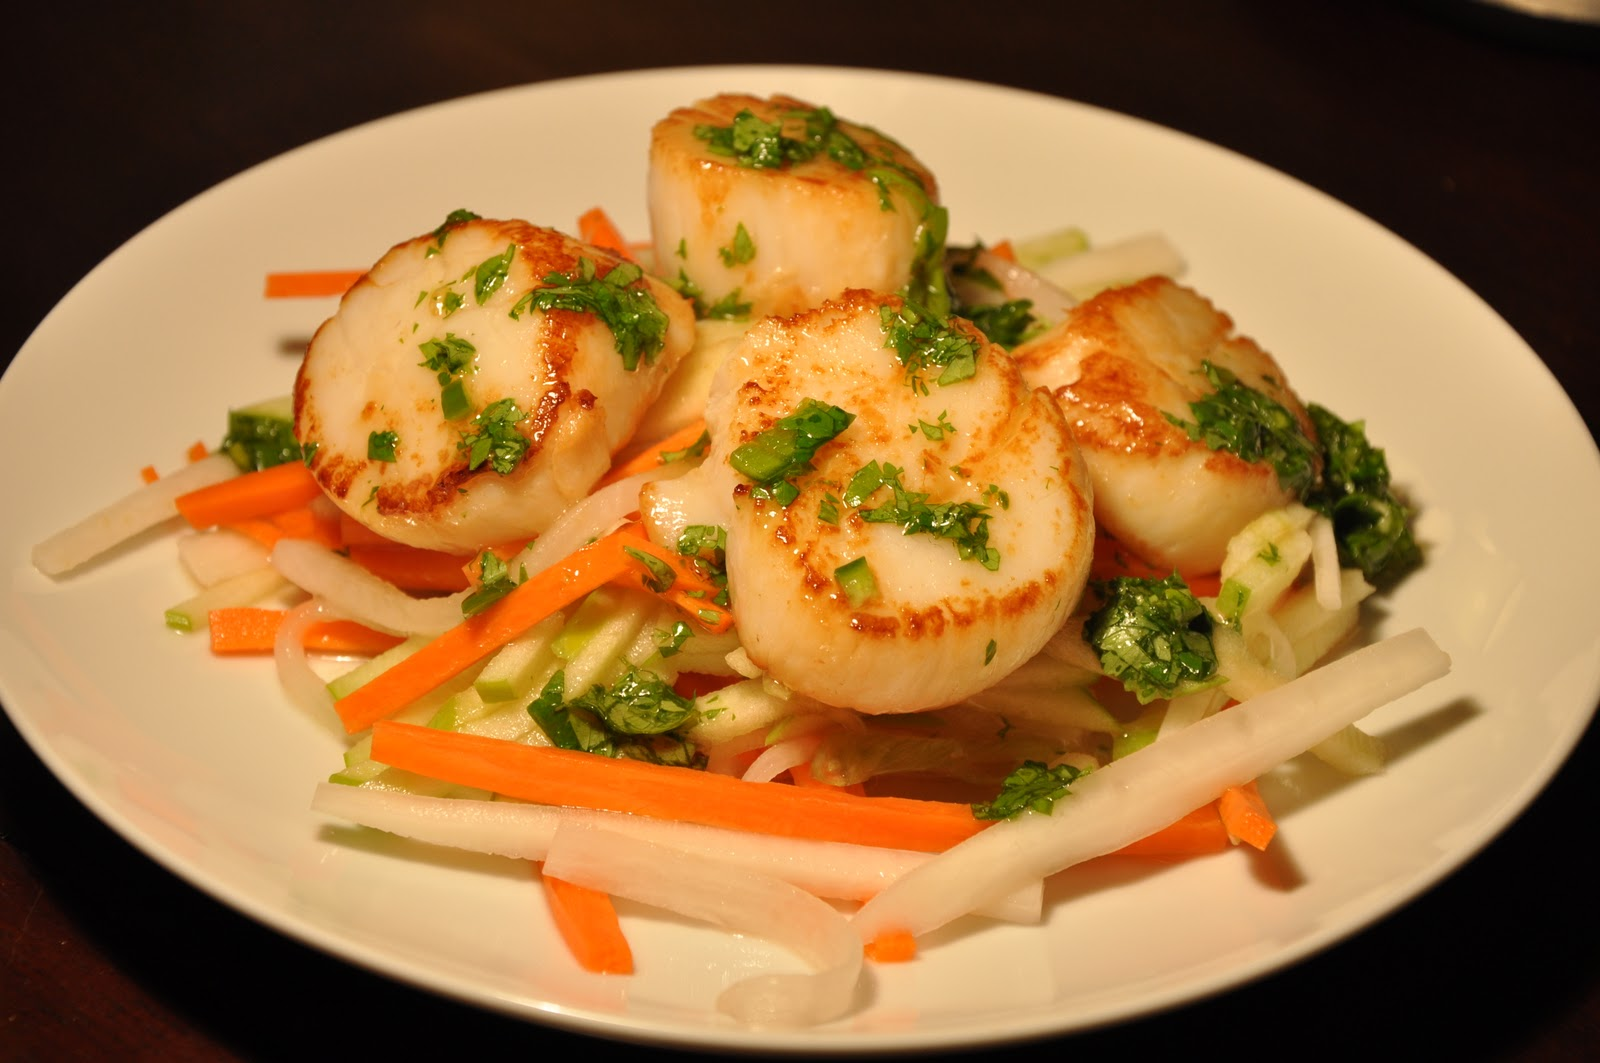 Slice of Rice: Scallops with Cilantro Sauce and Asian Slaw